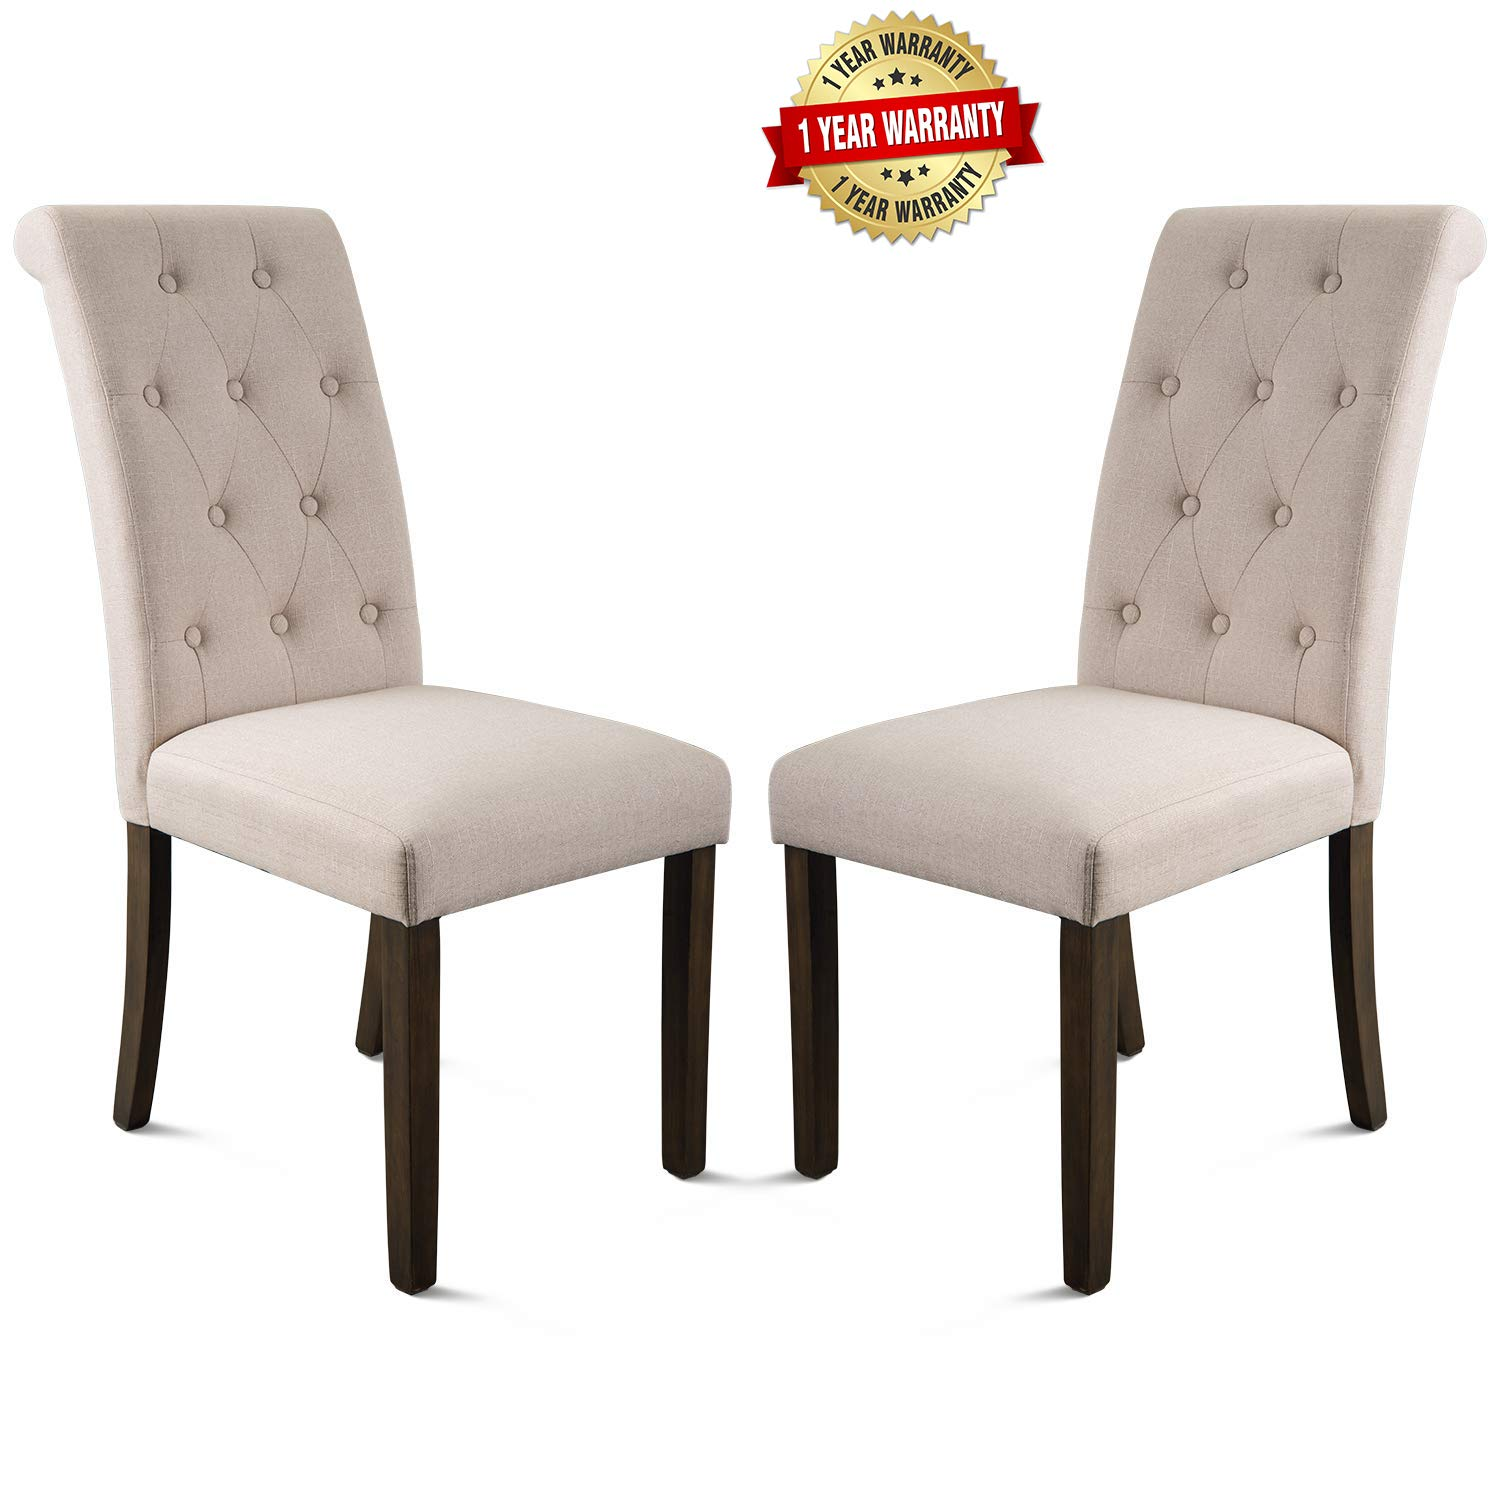 Merax Aristocratic Style Dining Chair Noble and Elegant Solid Wood Tufted Dining Chair Dining Room Set (Set of 2) by Merax